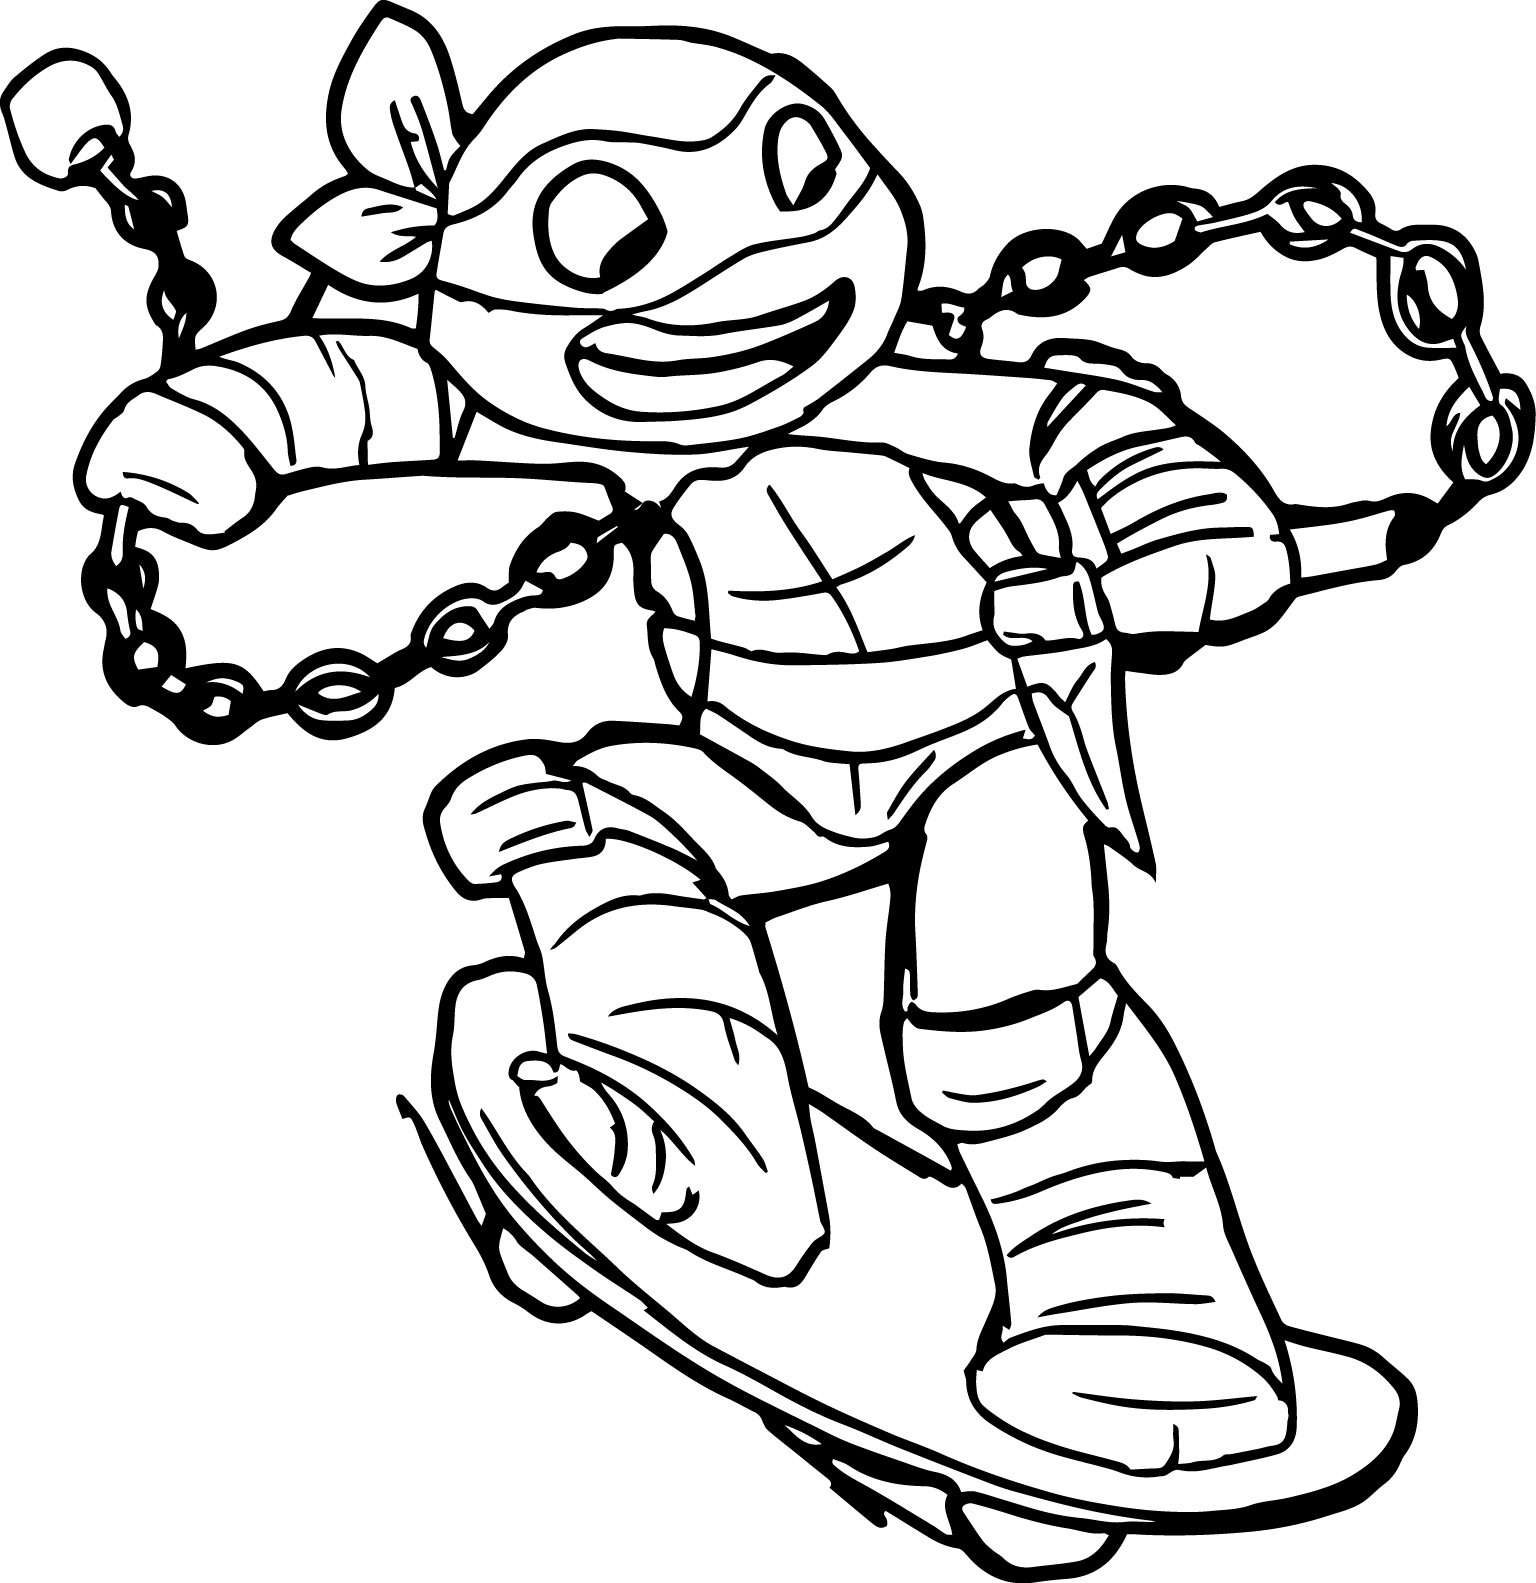 1536x1583 Sensational Design Ninja Turtles Coloring Pages Turtle Going